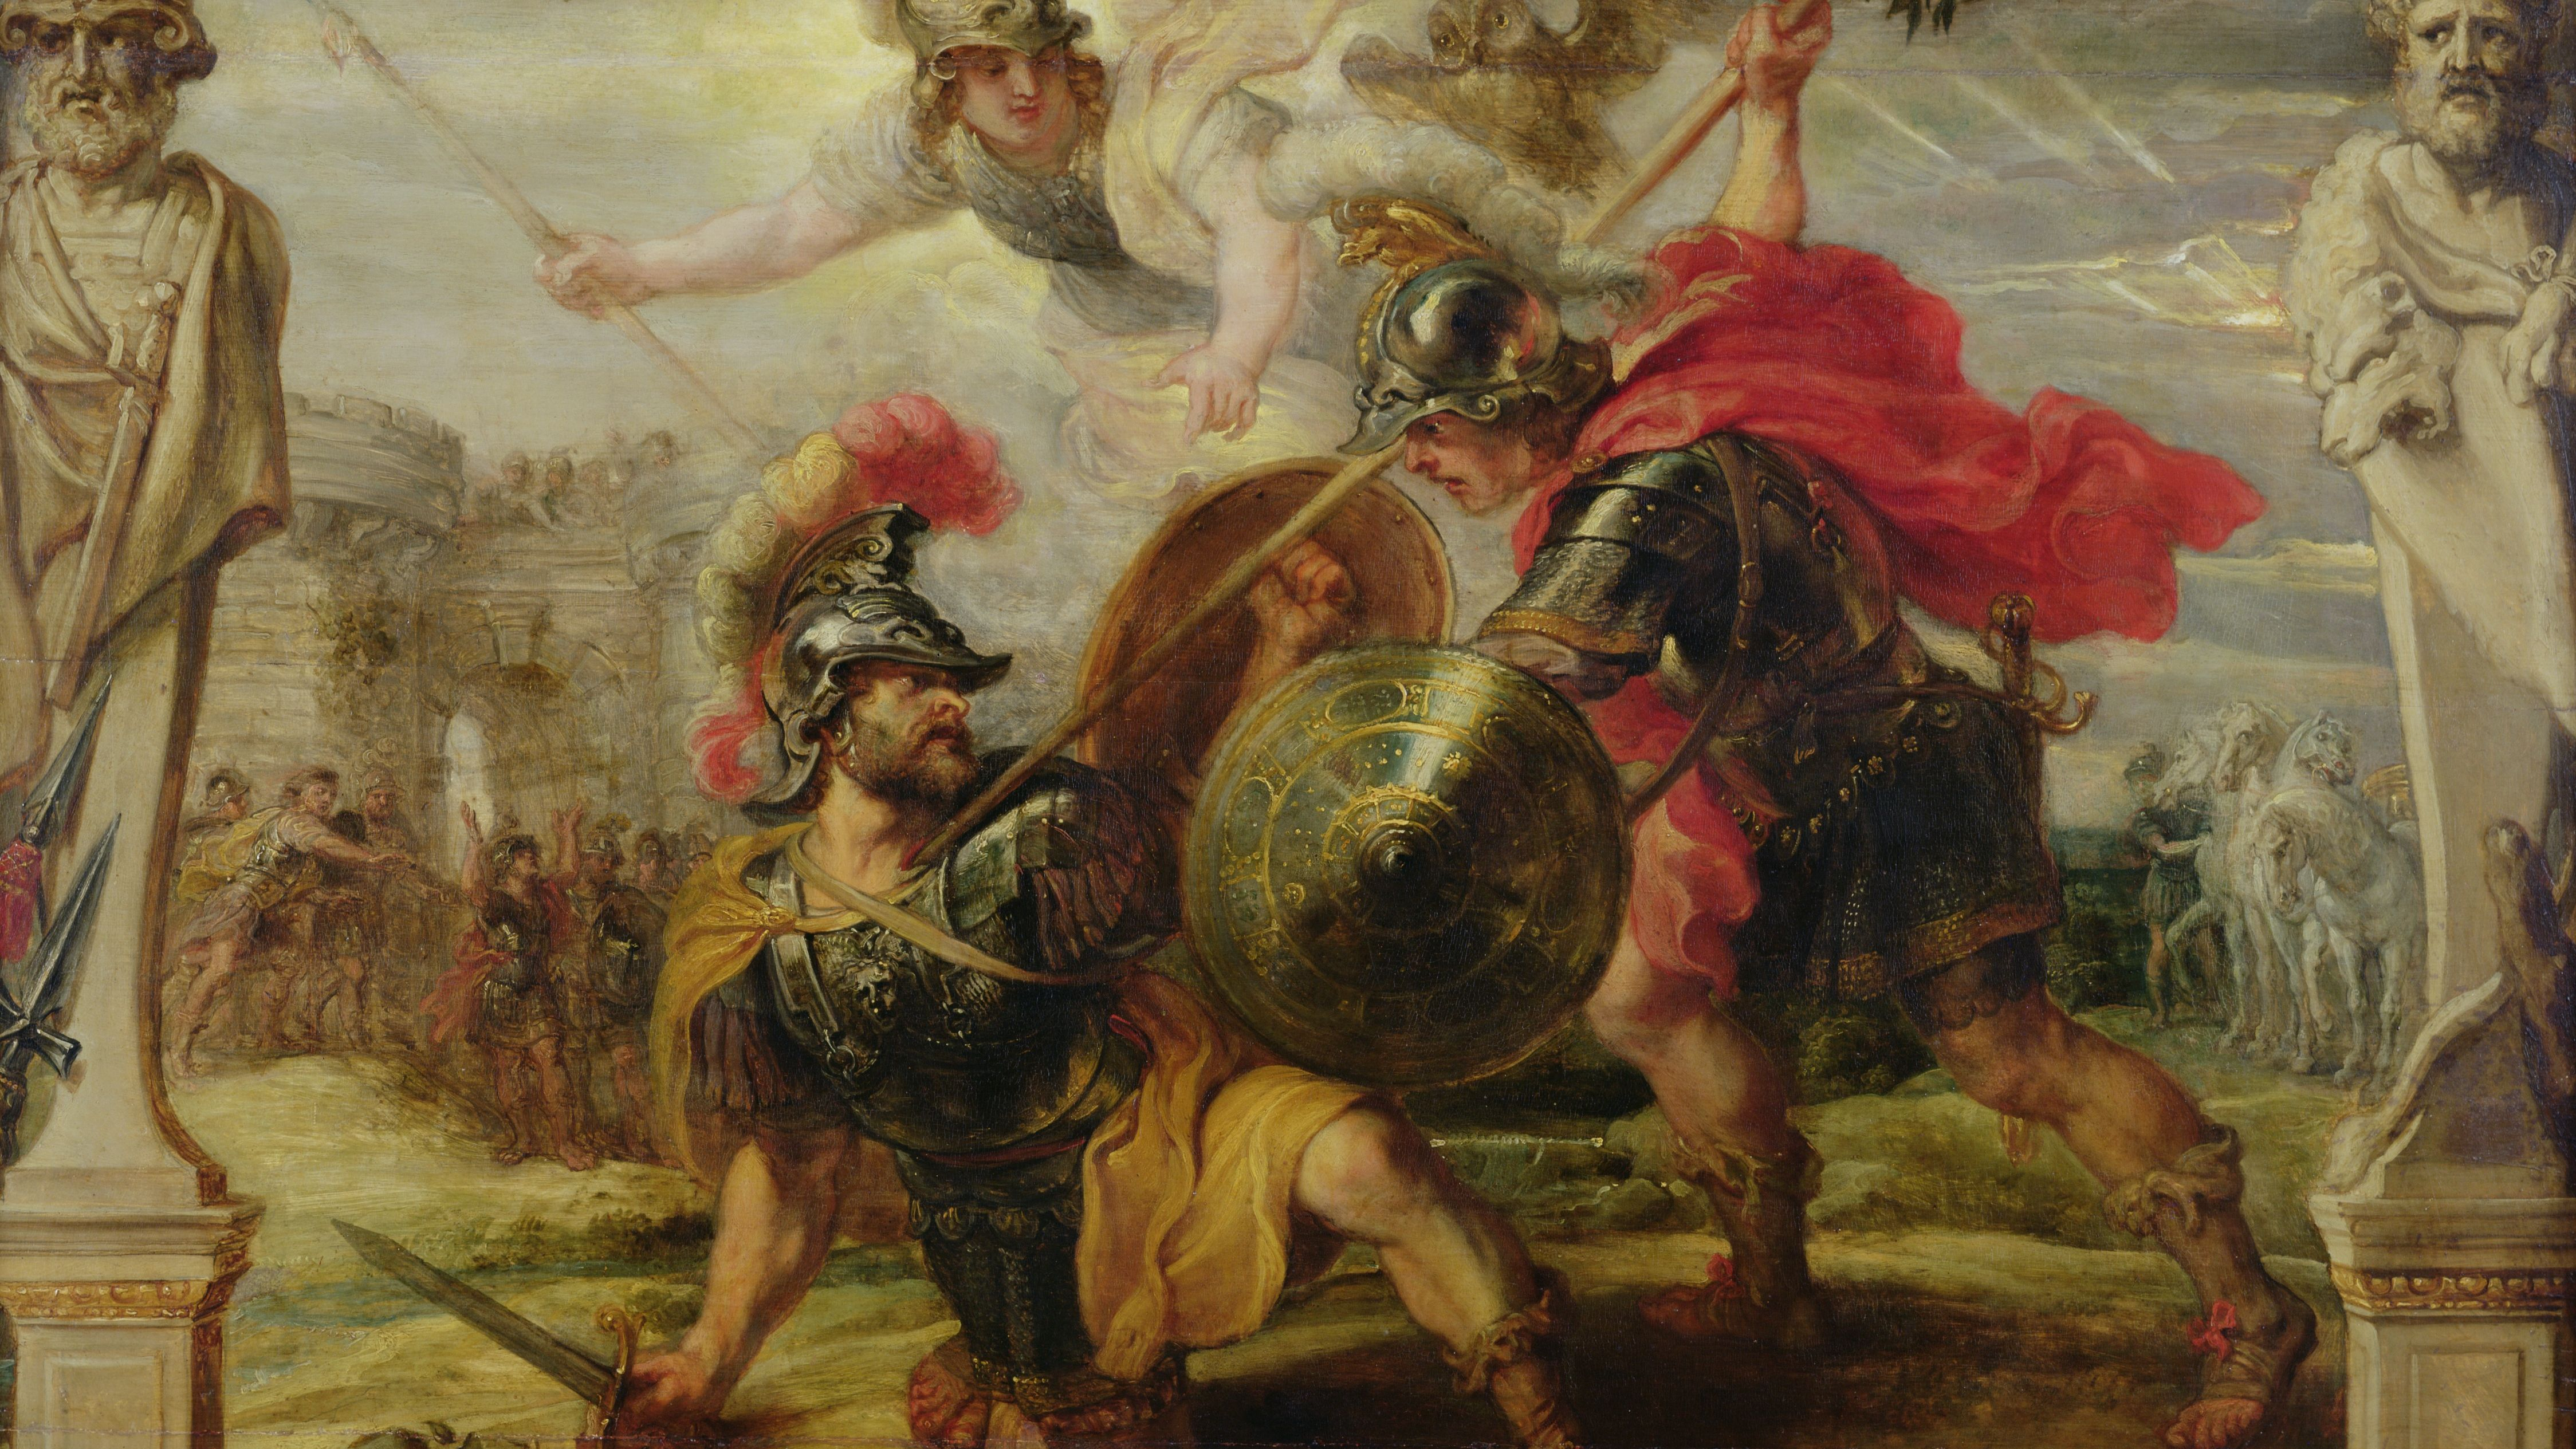 Why Did Achilles Kill Hector of Troy?